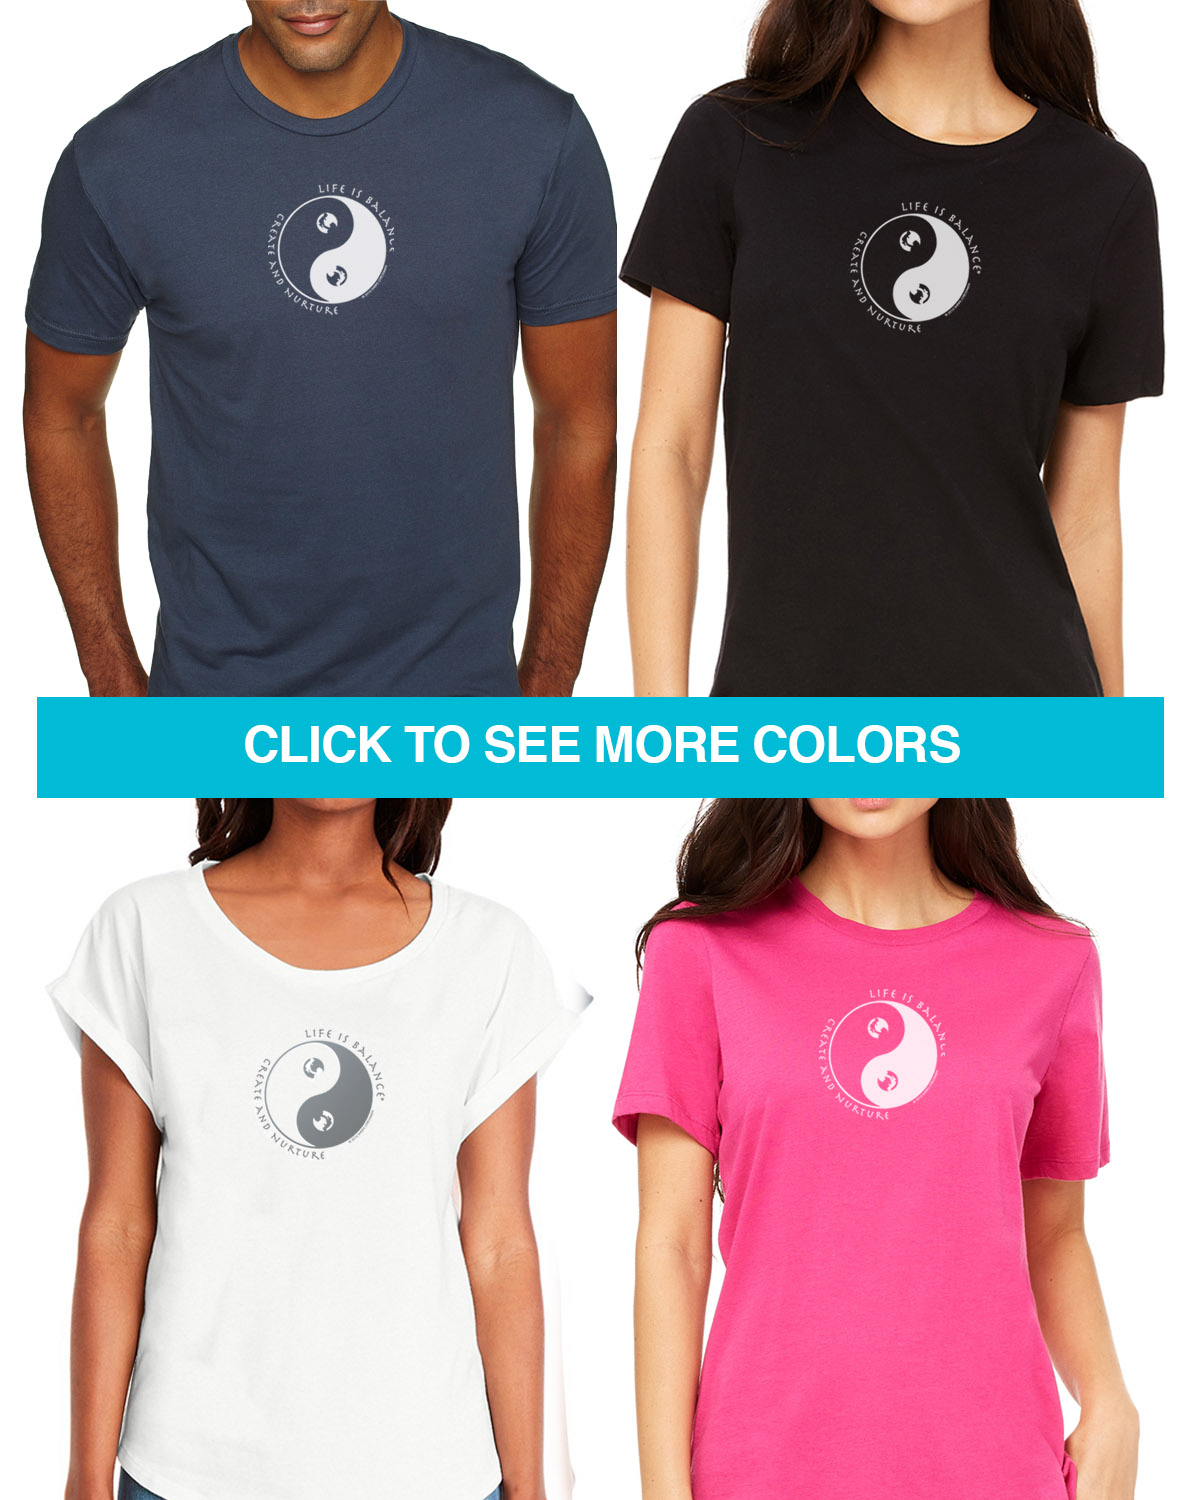 Parenting short sleeve T-shirts for Men and Women. Women's fitted styles and a unisex style for men and women